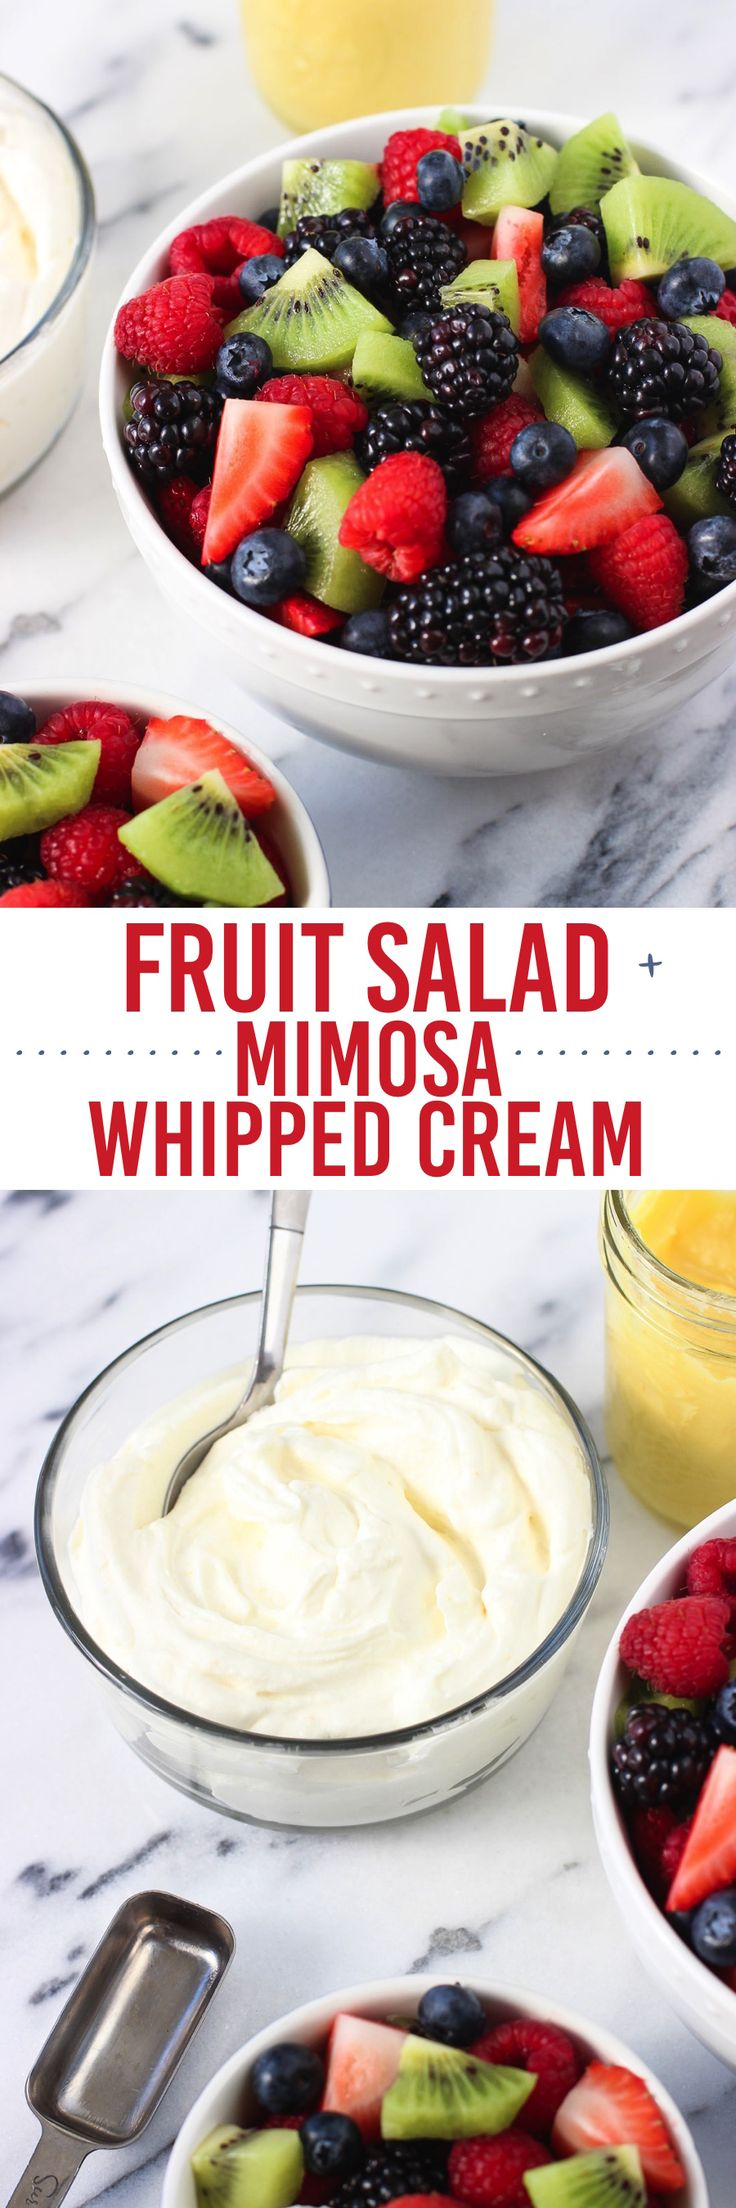 Fruit salad is fancied up with homemade mimosa whipped cream! A great recipe for spring and summertime brunch or entertaining.